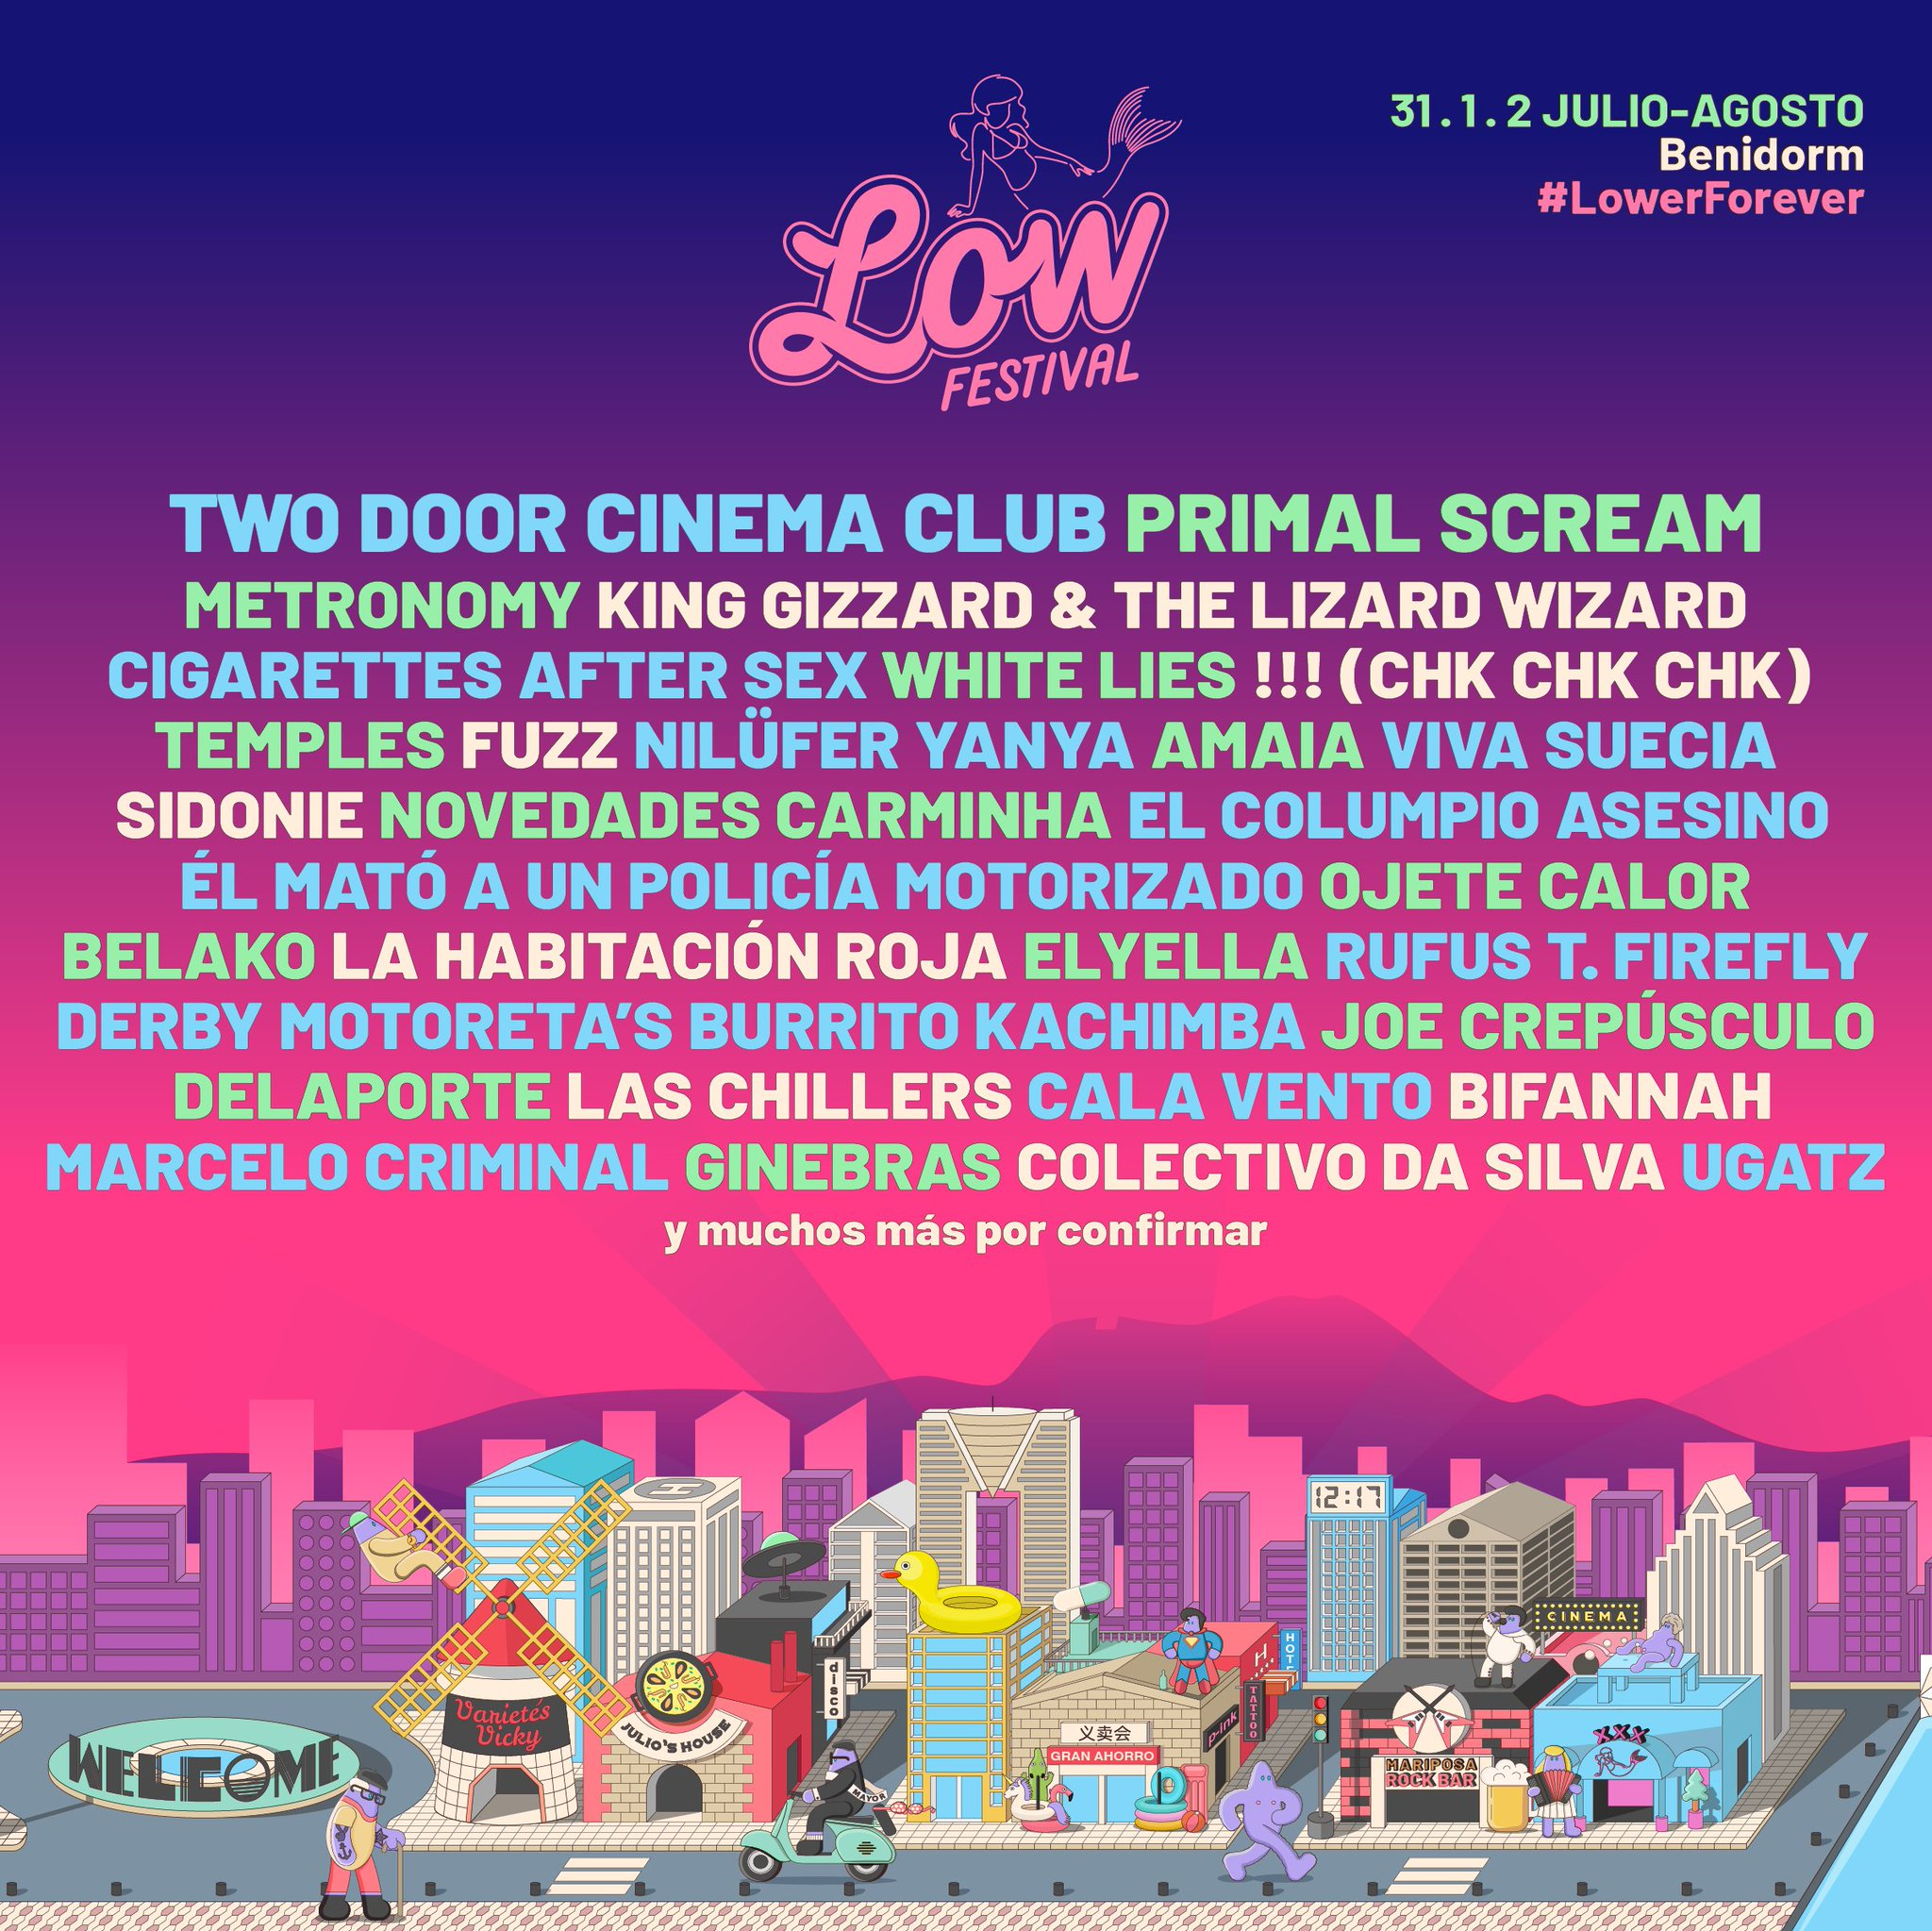 Low Festival 2020: King Gizzard, Fuzz, Primal Scream, Temples, Cigarettes after sex... EQfKVLUWoAAWpGO?format=jpg&name=large